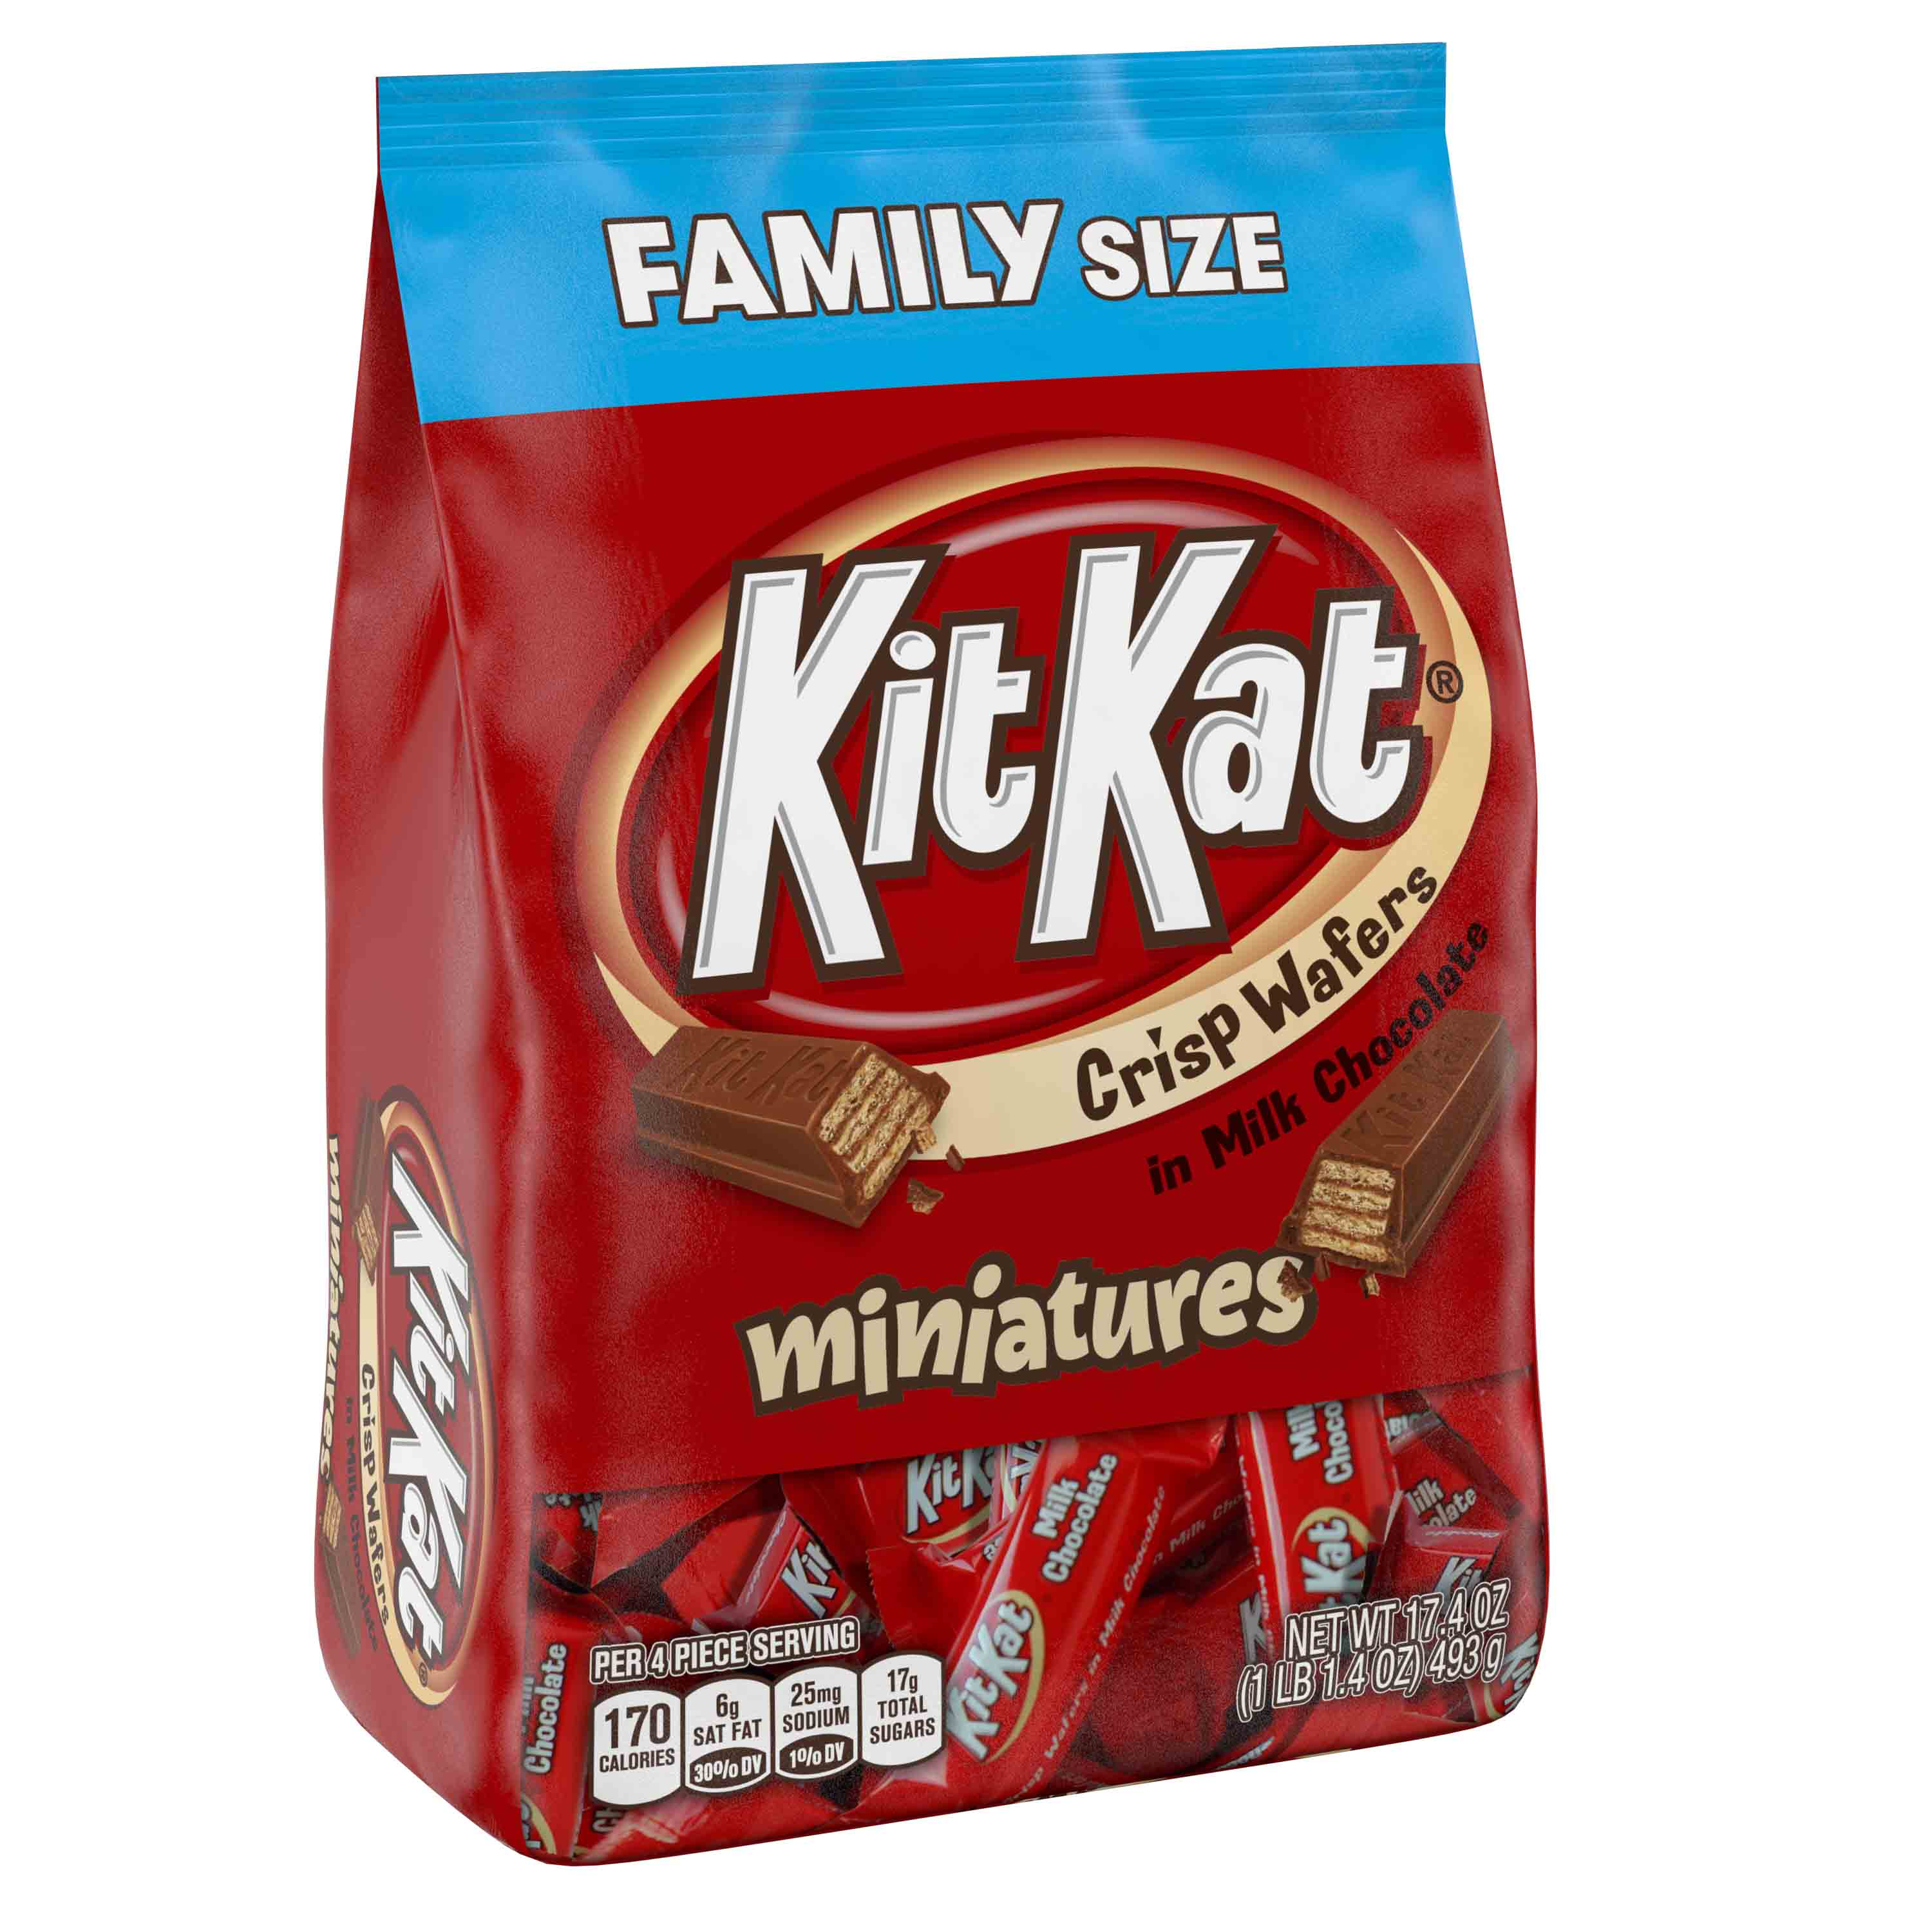 Kit Kat, Crisp Wafer Milk Chocolate Candy Bars Miniatures, 17.4 Oz